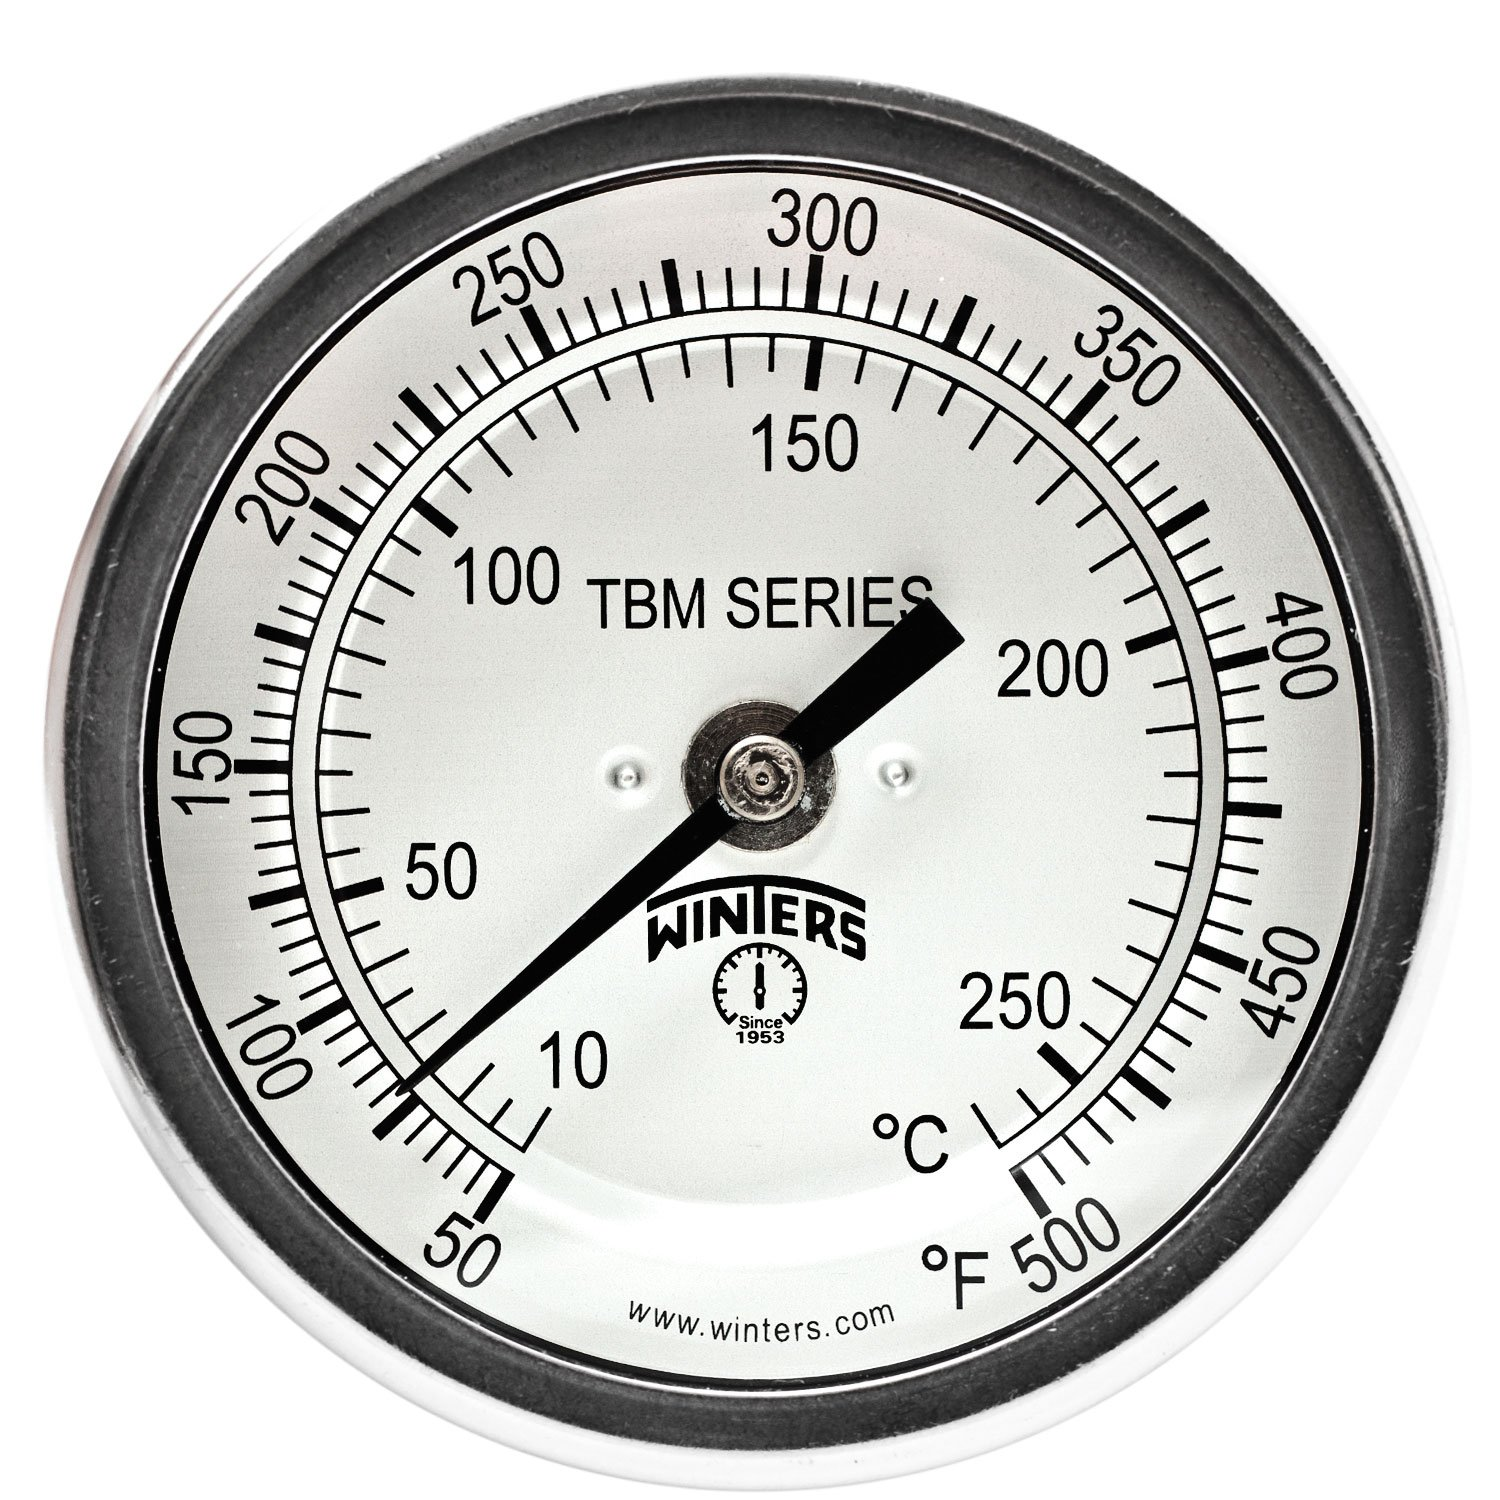 Winters TBM Series Stainless Steel 304 Dual Scale Bi-Metal Thermometer, 6'' Stem, 1/2'' NPT Fixed Center Back Mount Connection, 3'' Dial, 50-500 F/C Range by Winters Instruments